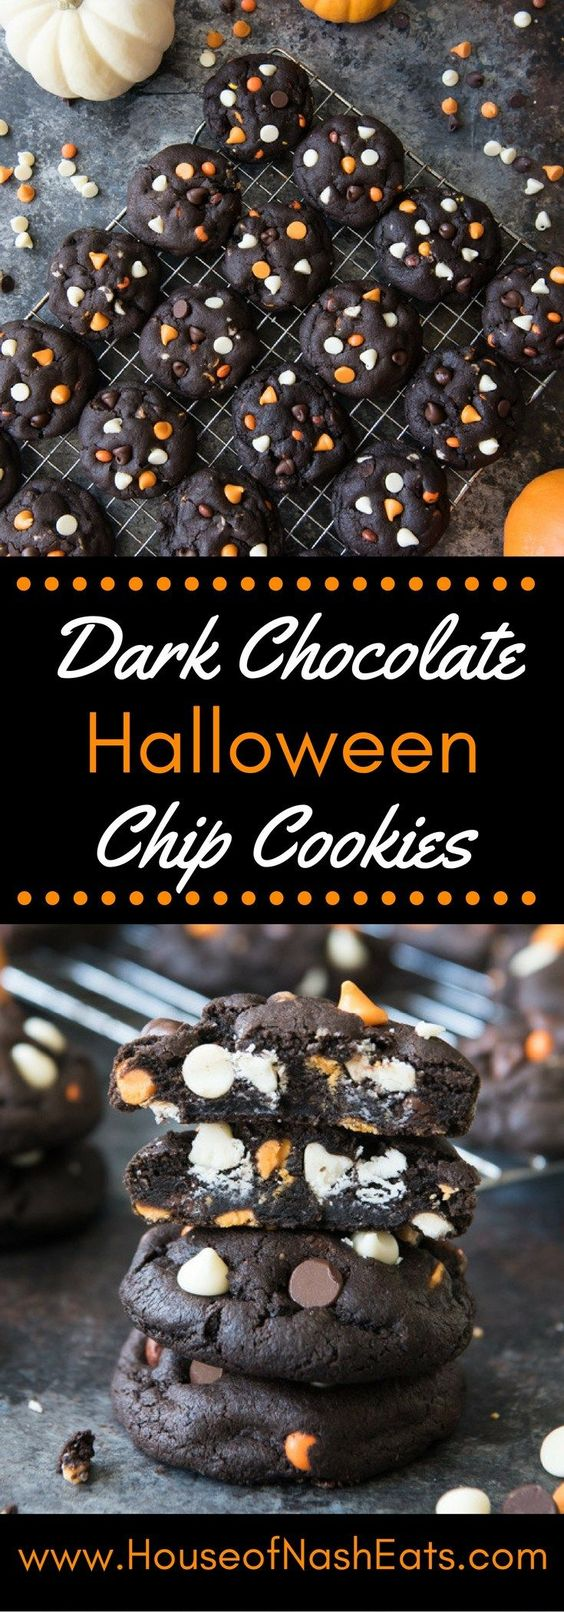 Dark Chocolate Chip Cookies Halloween Dessert Tutorials